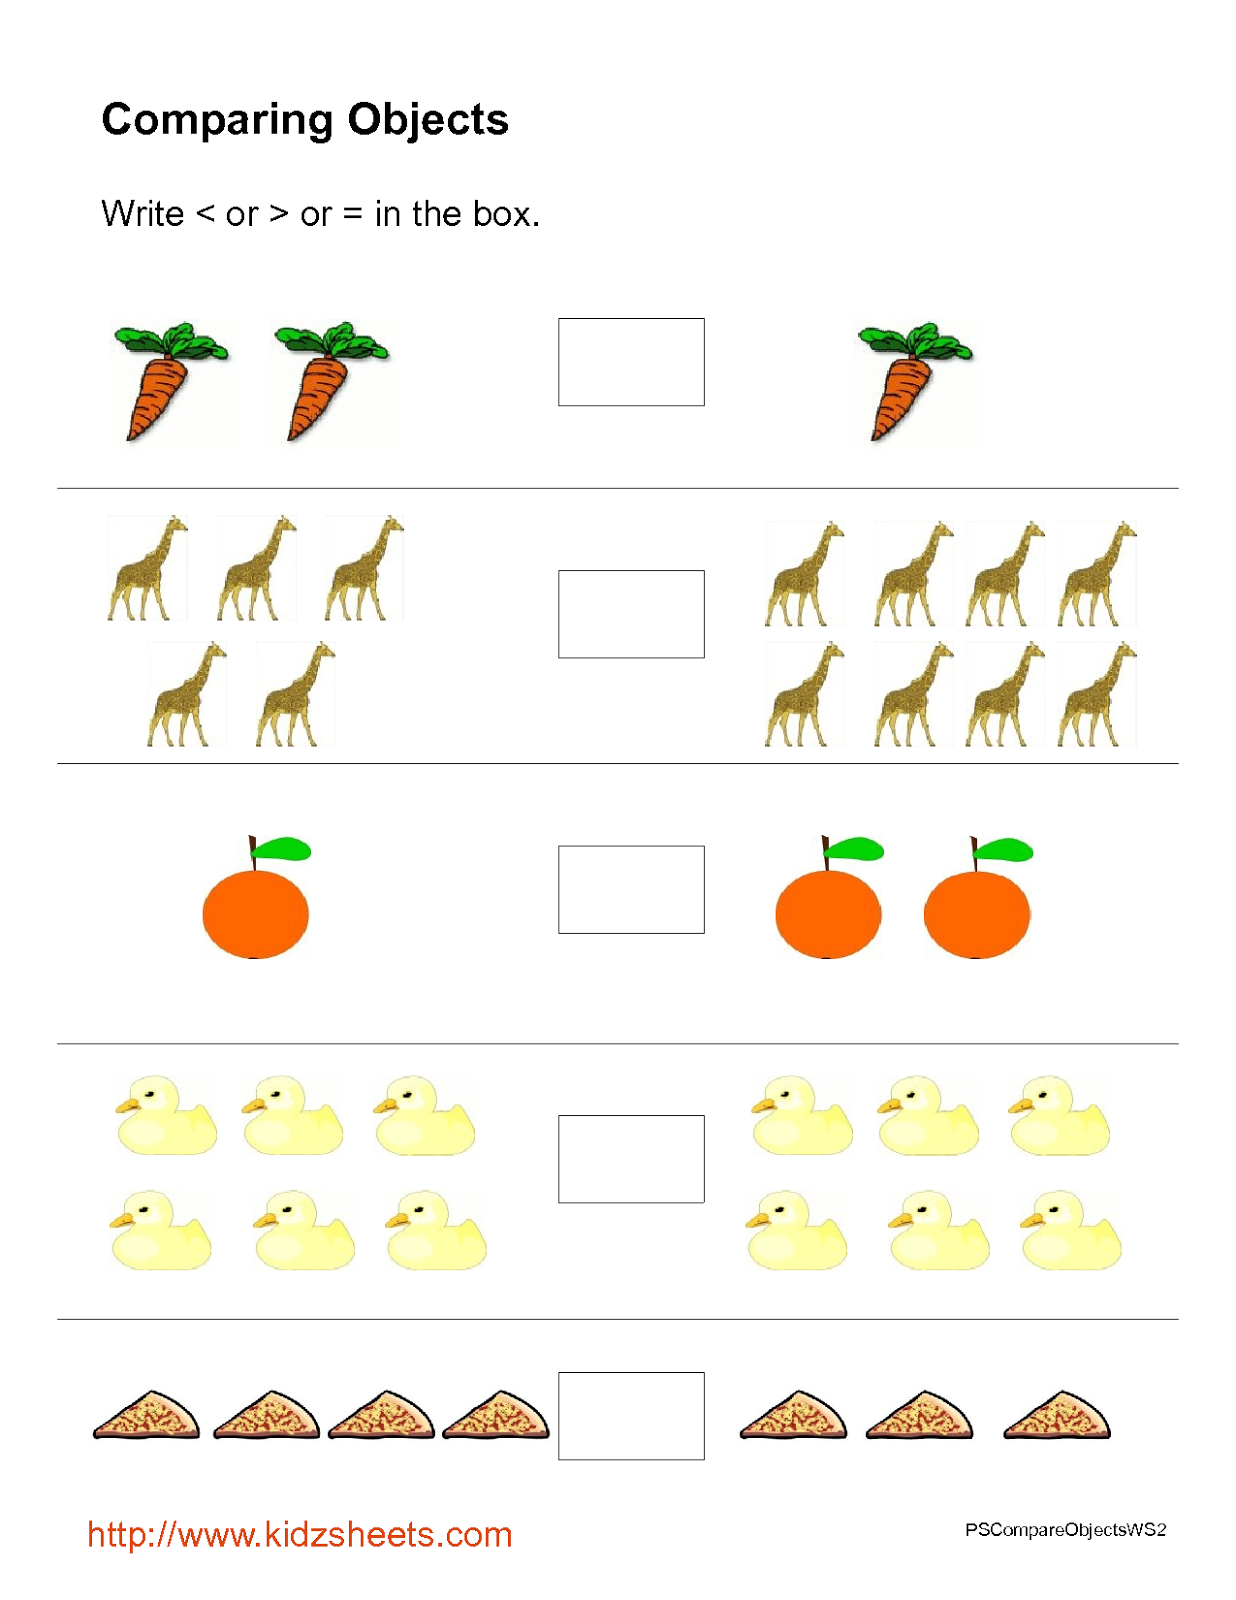 Free Printable Preschool Worksheets, Free Worksheets, Kids Maths Worksheets, Maths Worksheets, Preschool Object Comparison,Object Comparison, Preschool, Kids Object Comparison.